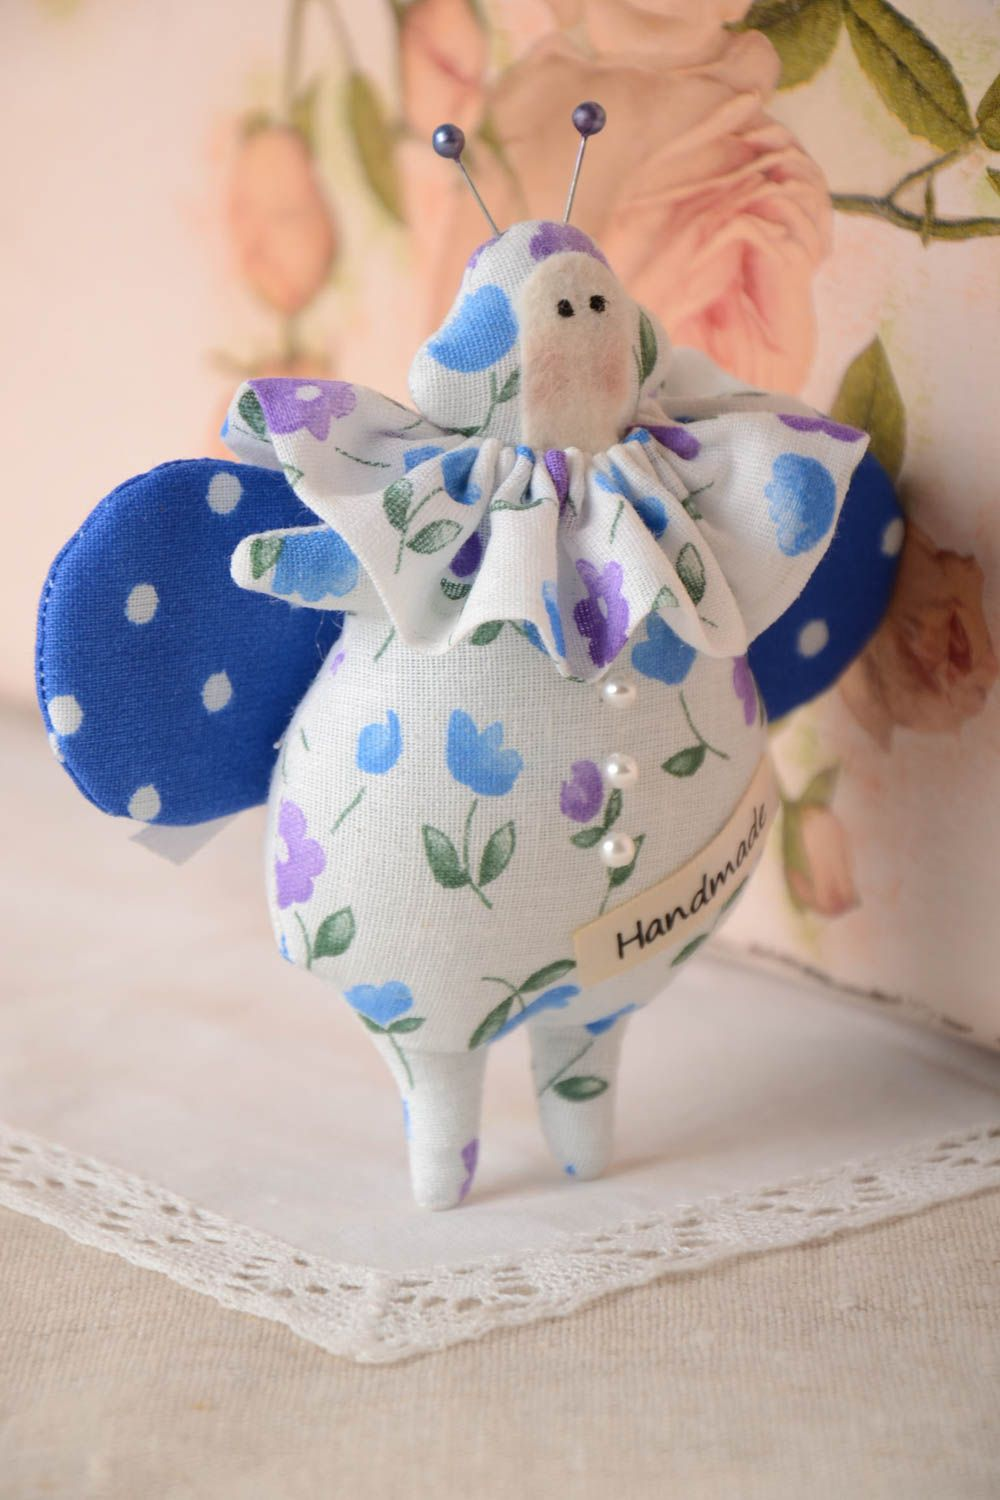 Beautiful homemade fabric toy stuffed soft toy collectible rag doll gift ideas photo 1